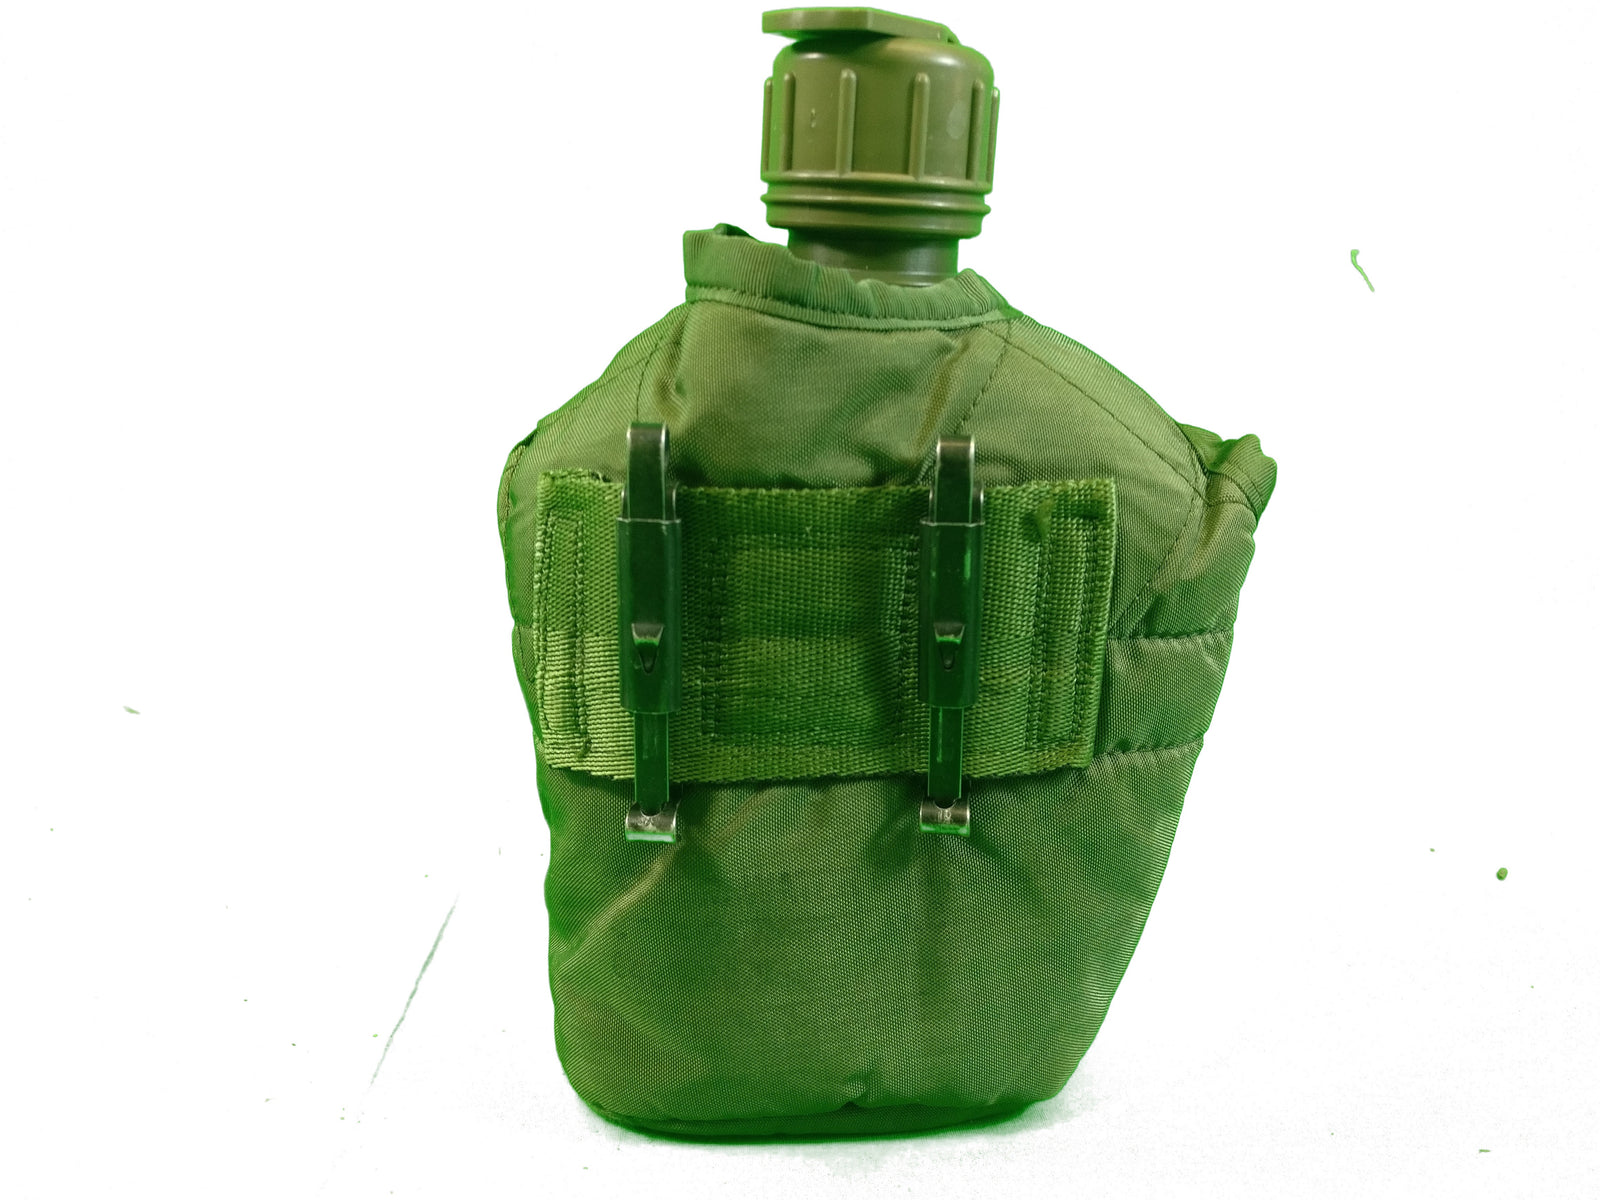 DUP01-US army styled 1 quart water bottle canteen field flask olive green army cadet